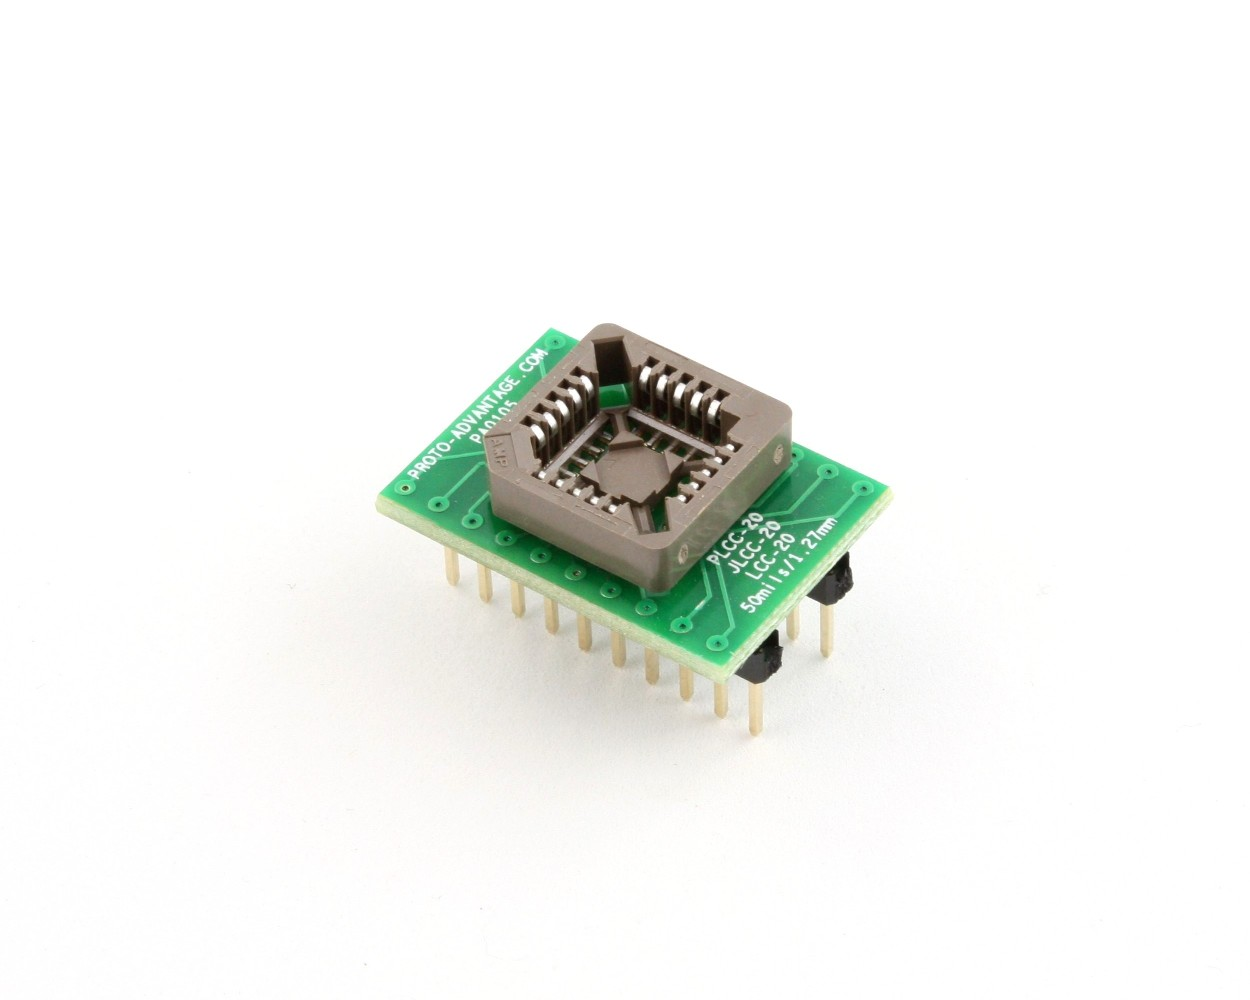 PLCC-20 Socket to DIP-20 Adapter (50 mils / 1.27 mm pitch) 0